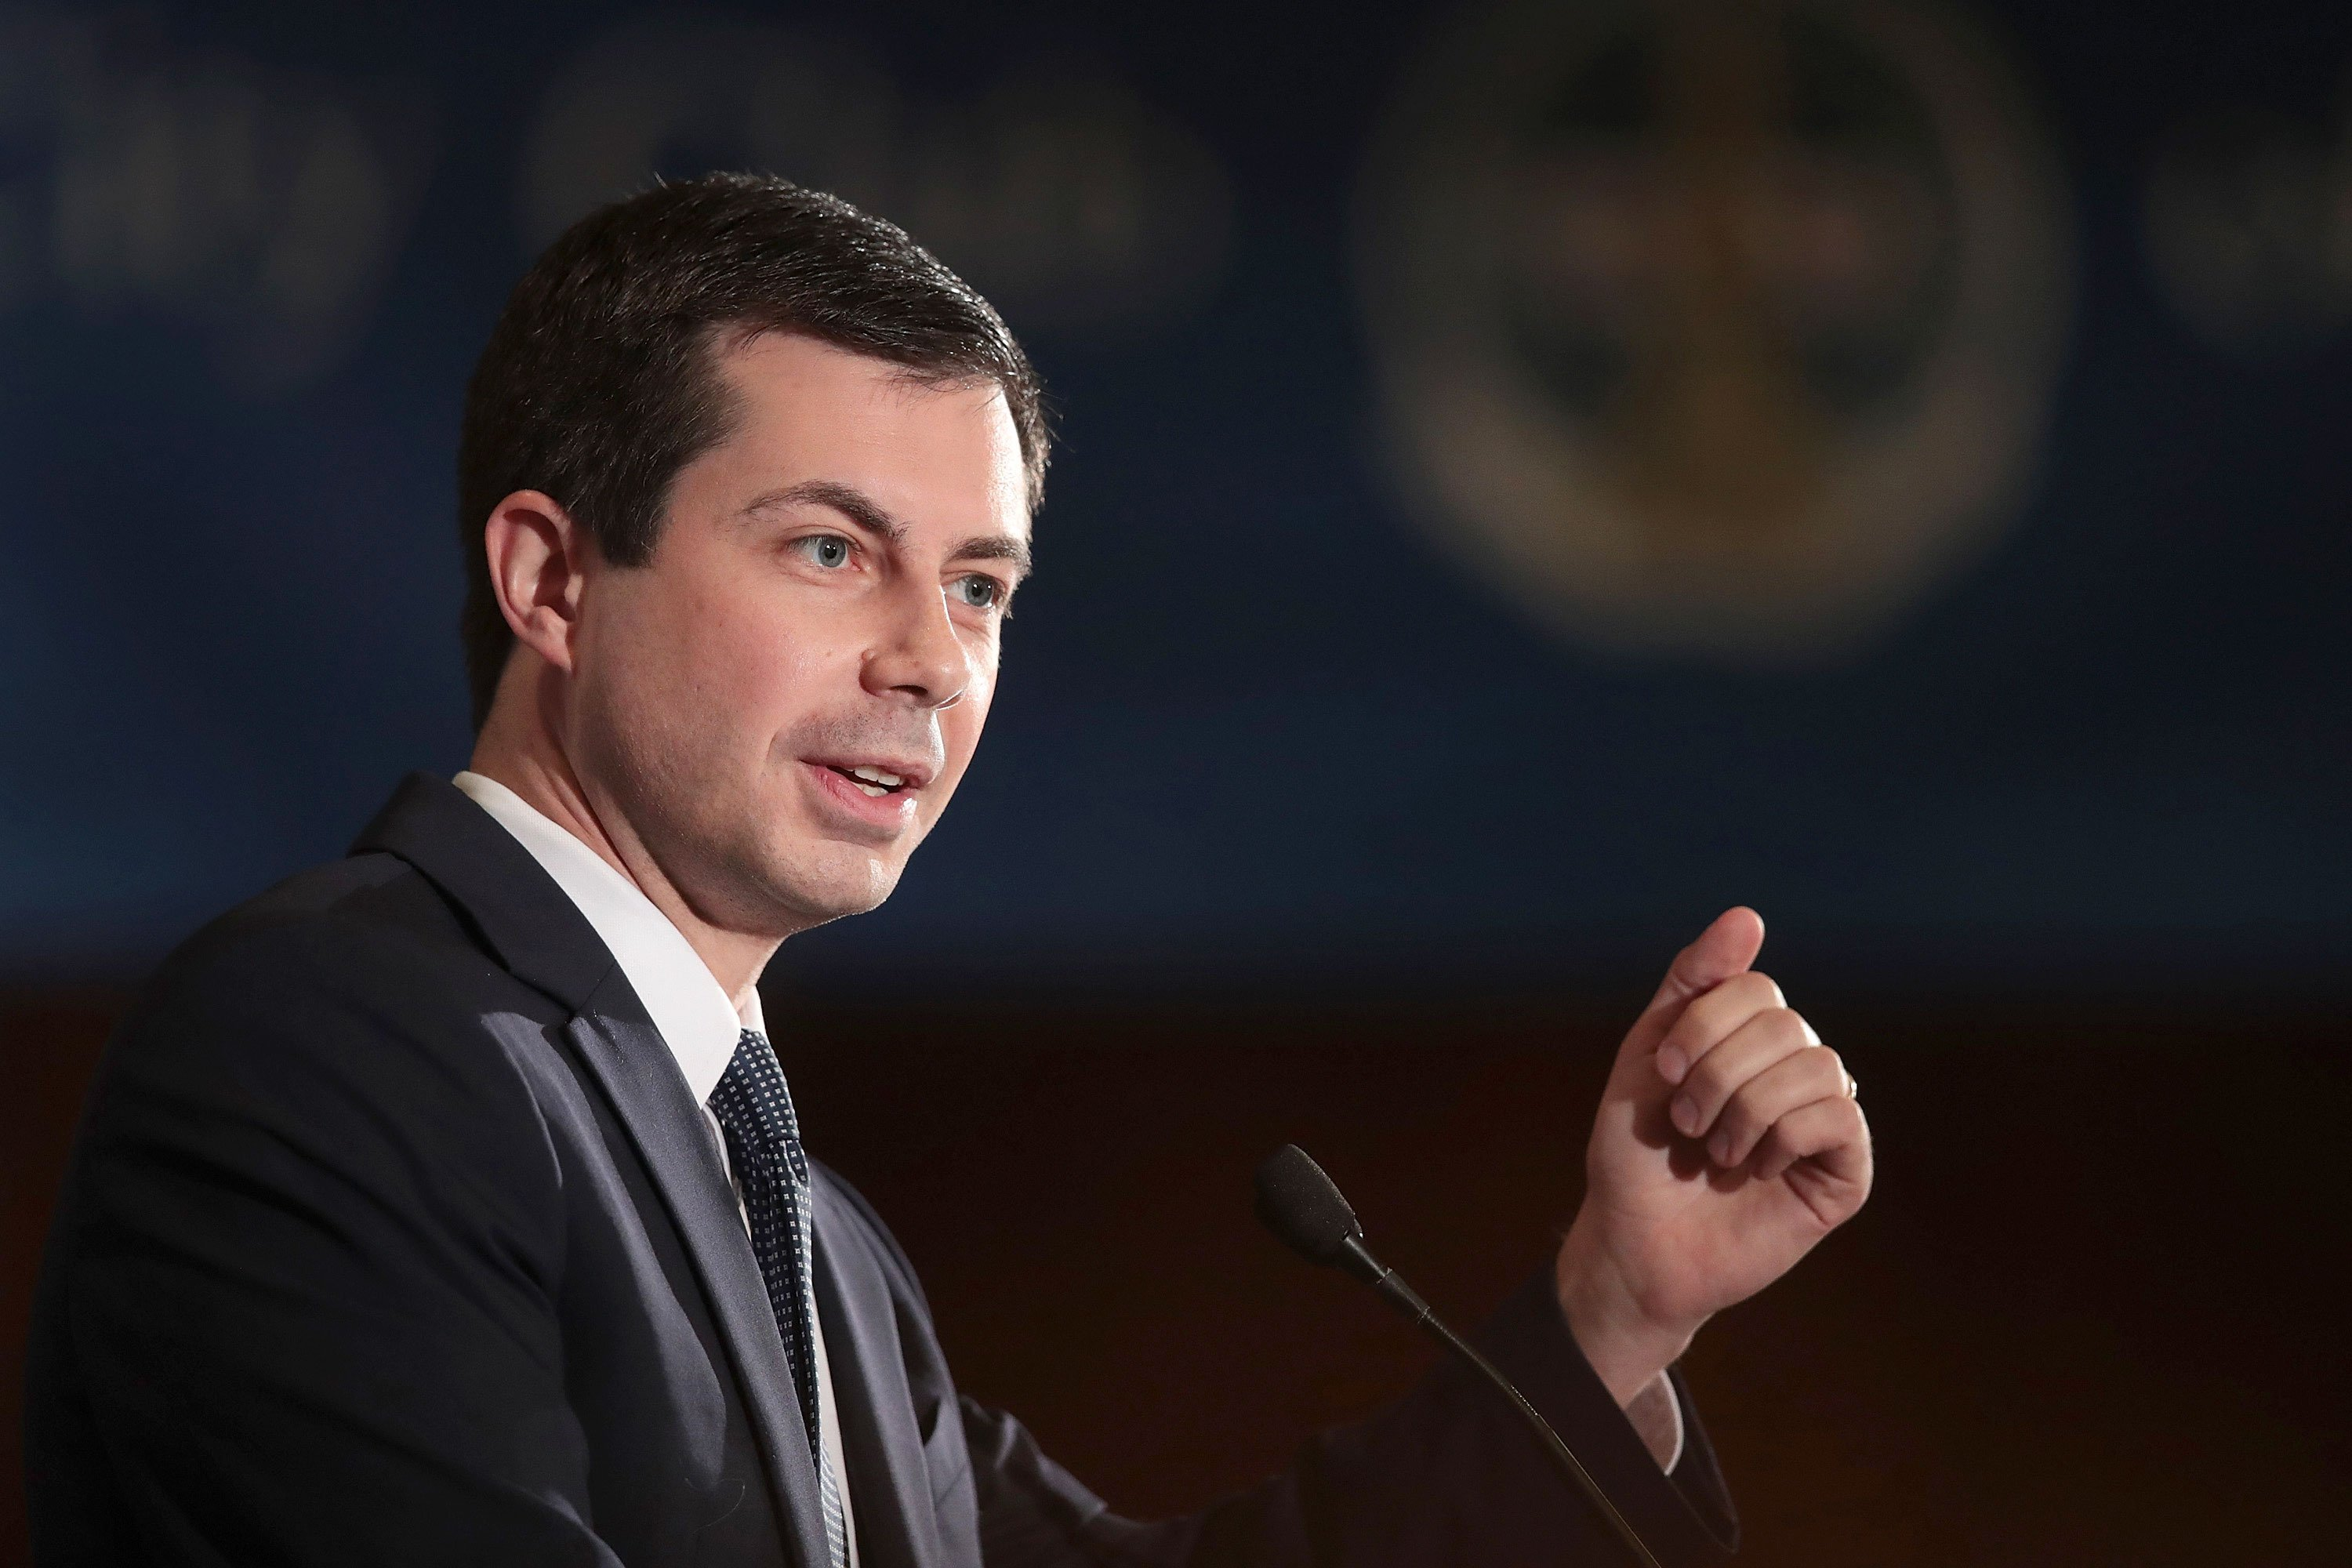 Buttigieg swipes at Warren for being 'evasive' on health care